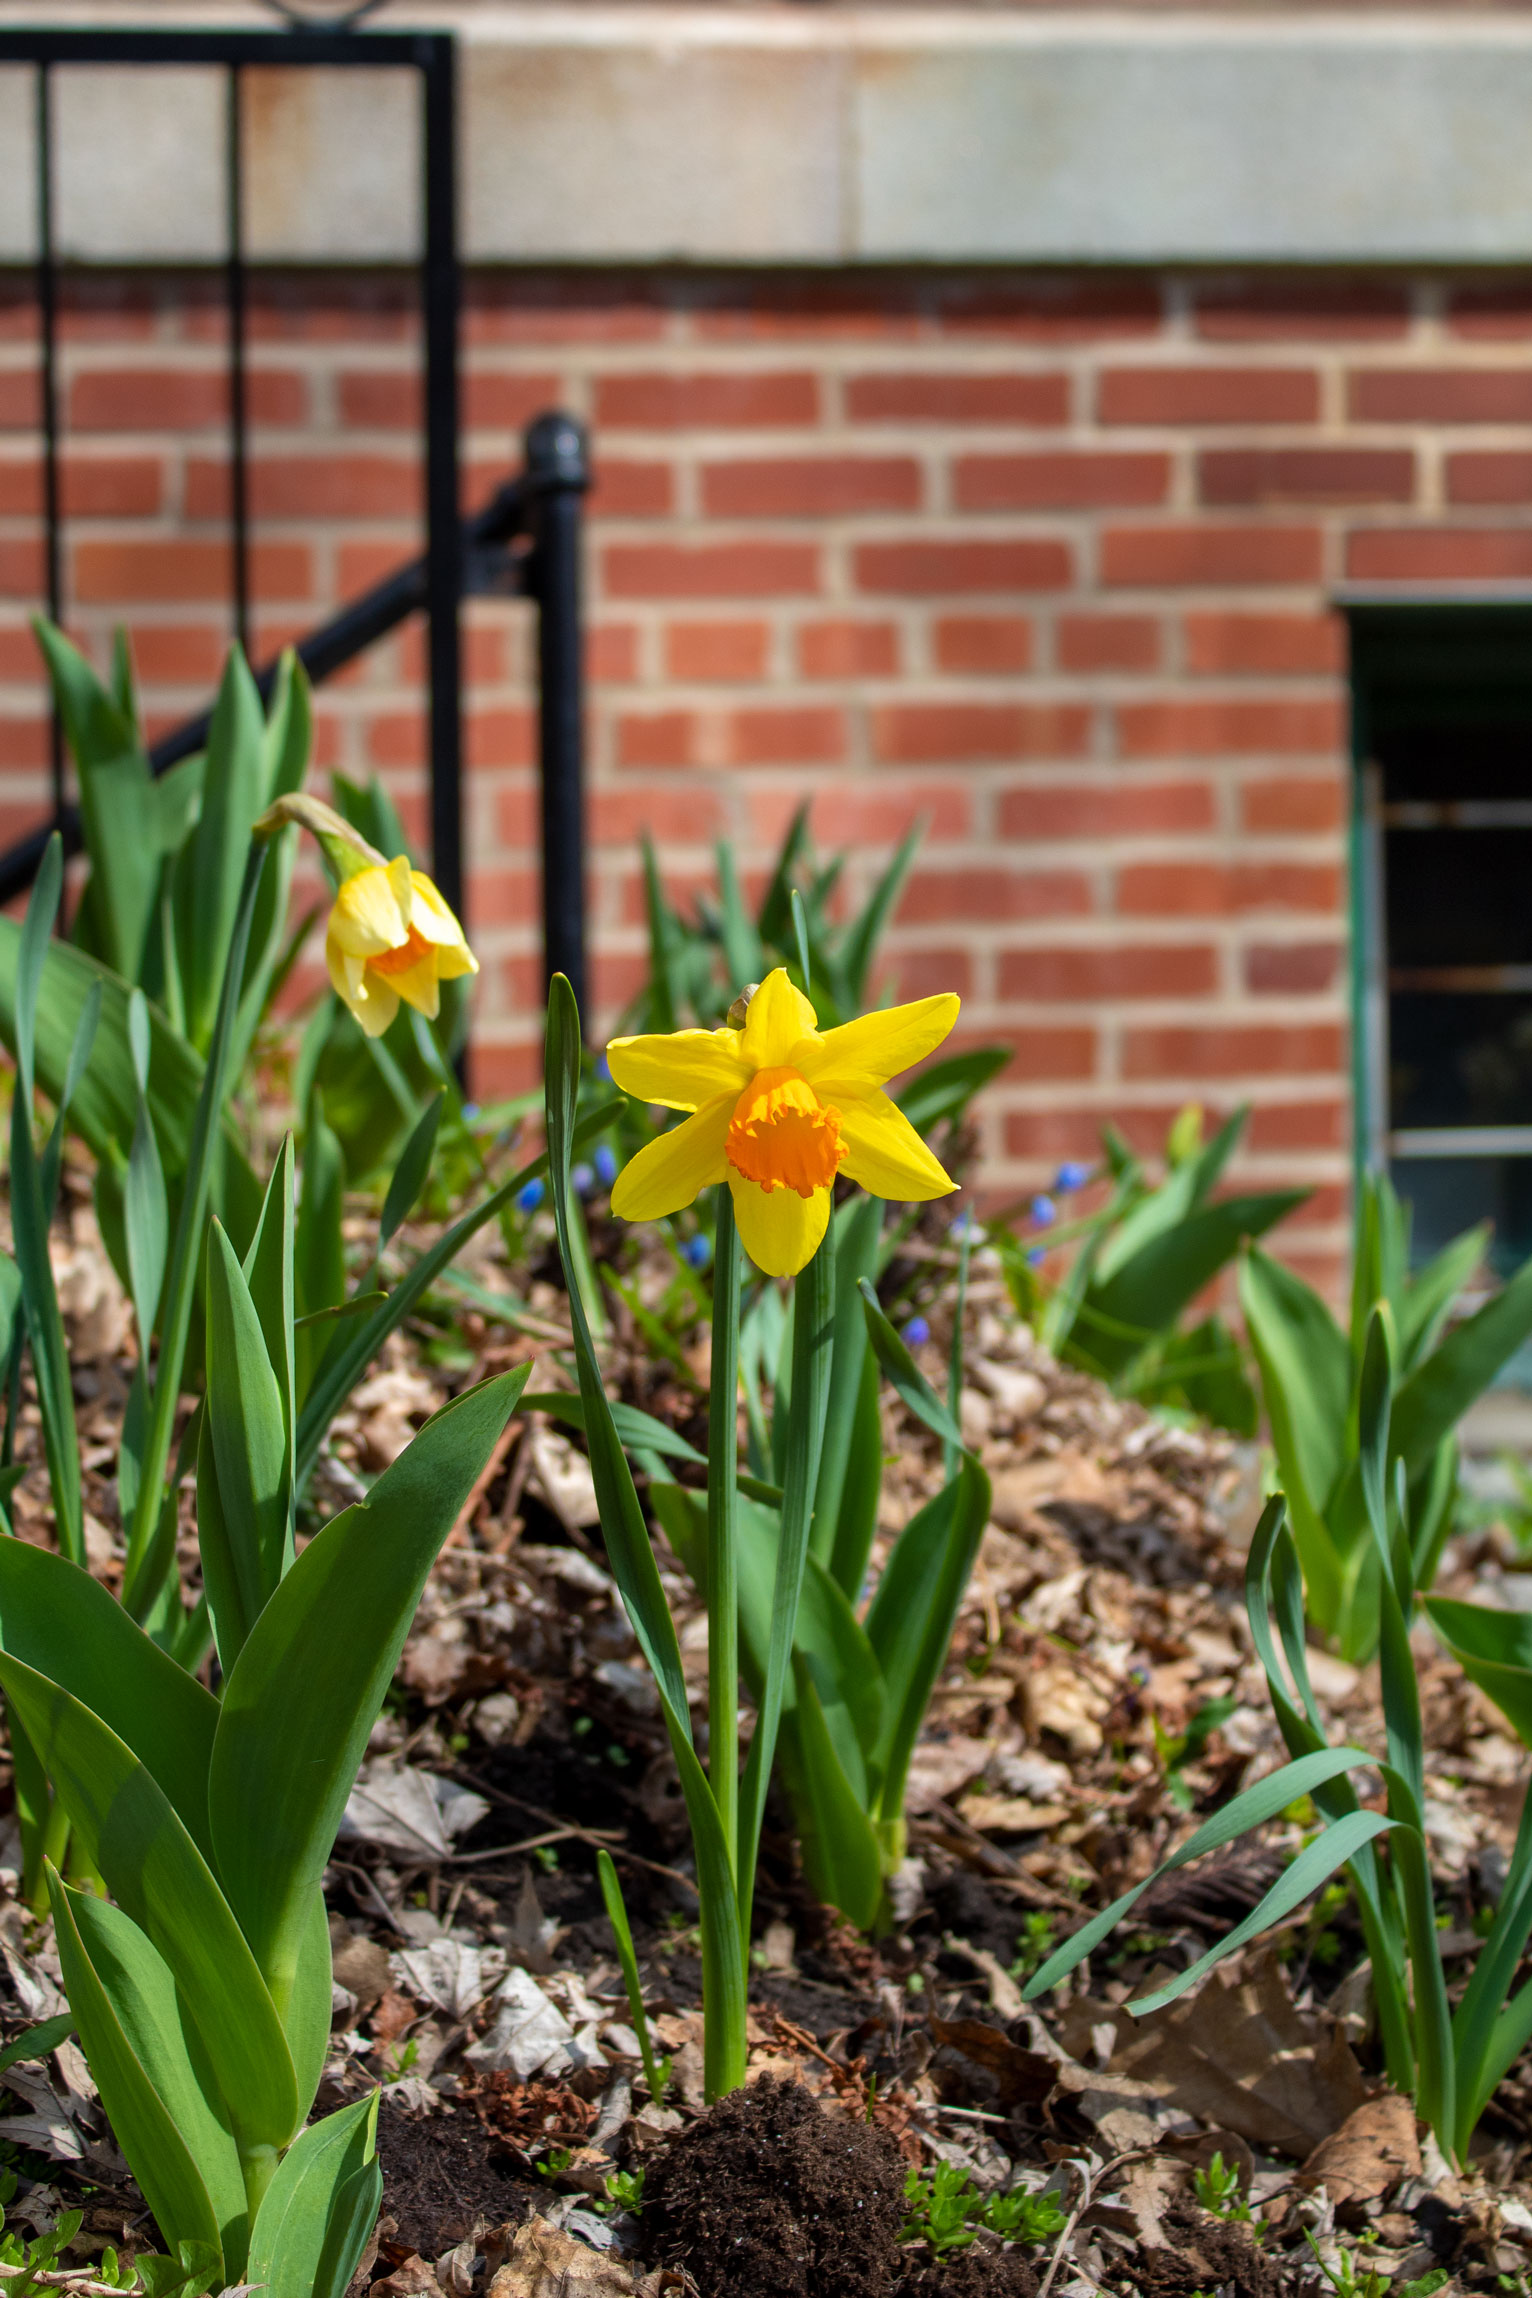 Bright yellow star-shaped flower with radiant green stalk and leaves standing in a garden